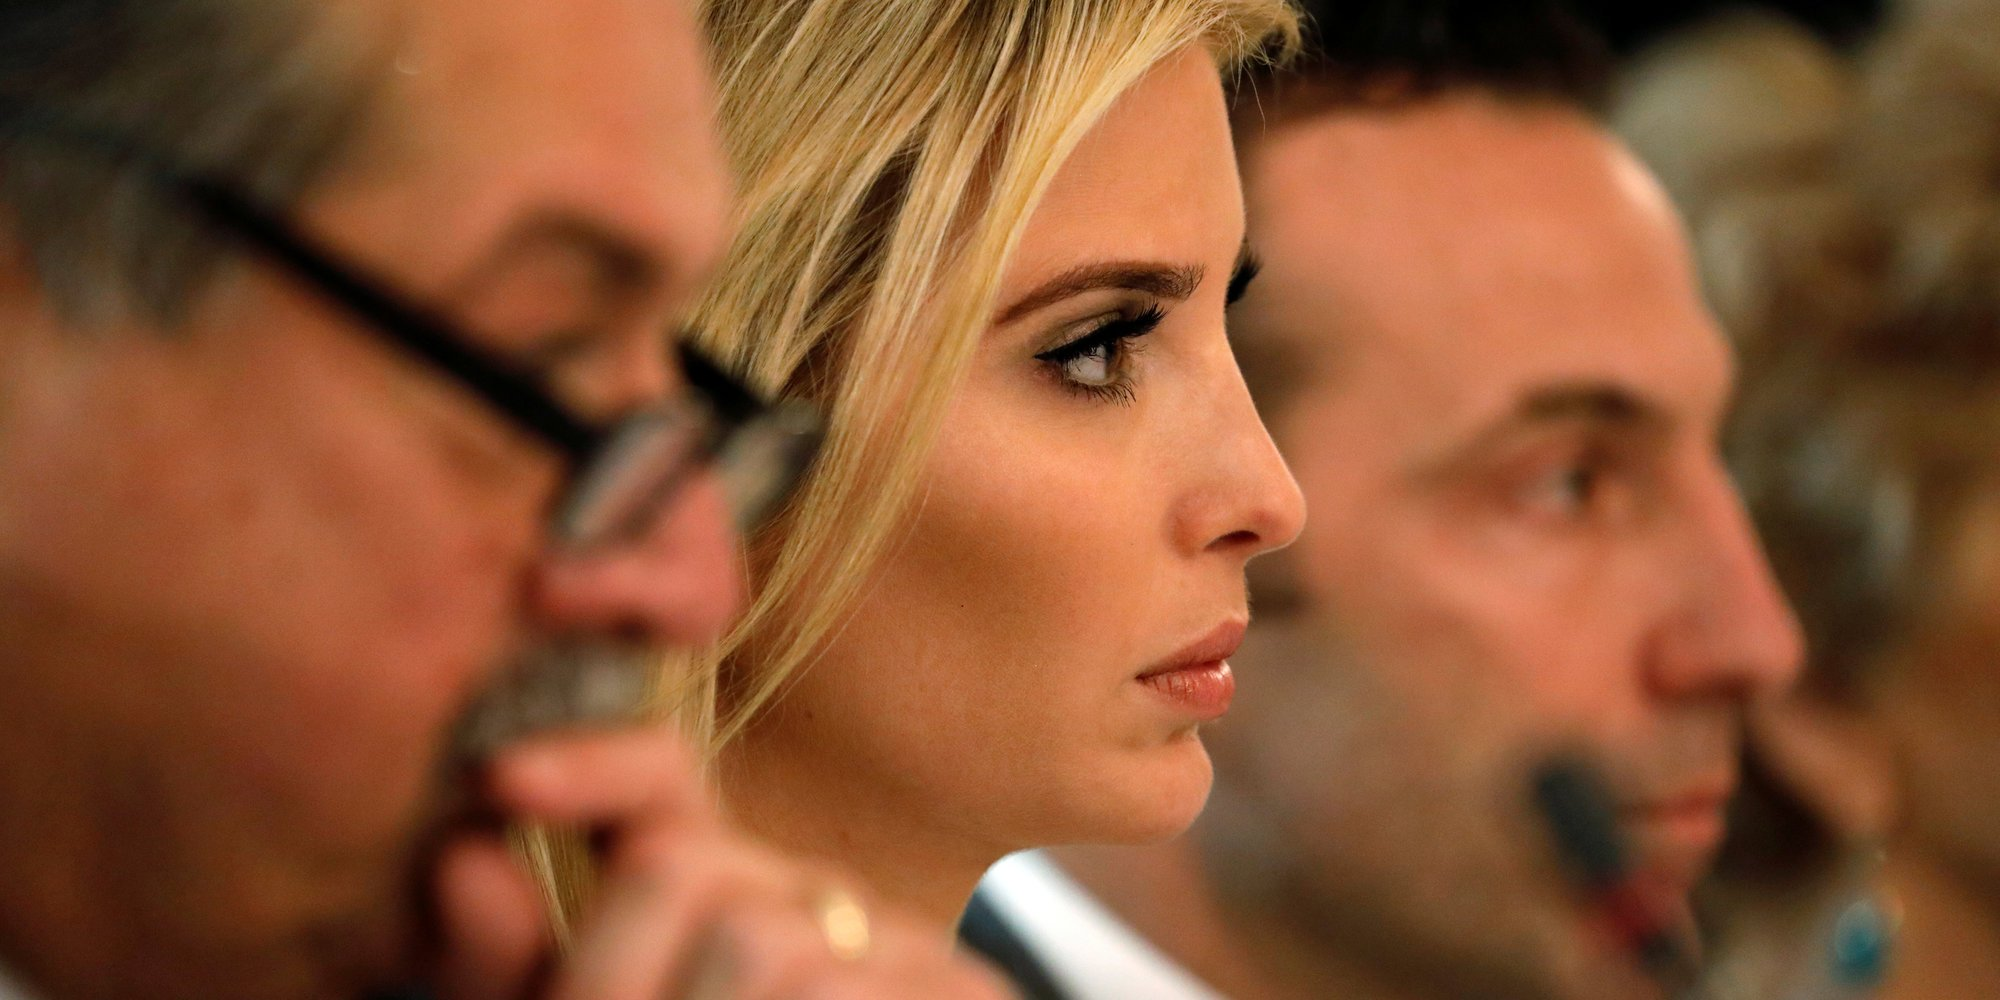 New reports raise questions about Ivanka Trump's White House role https://t.co/KFi1jTzgaL https://t.co/fHA4yVlACv